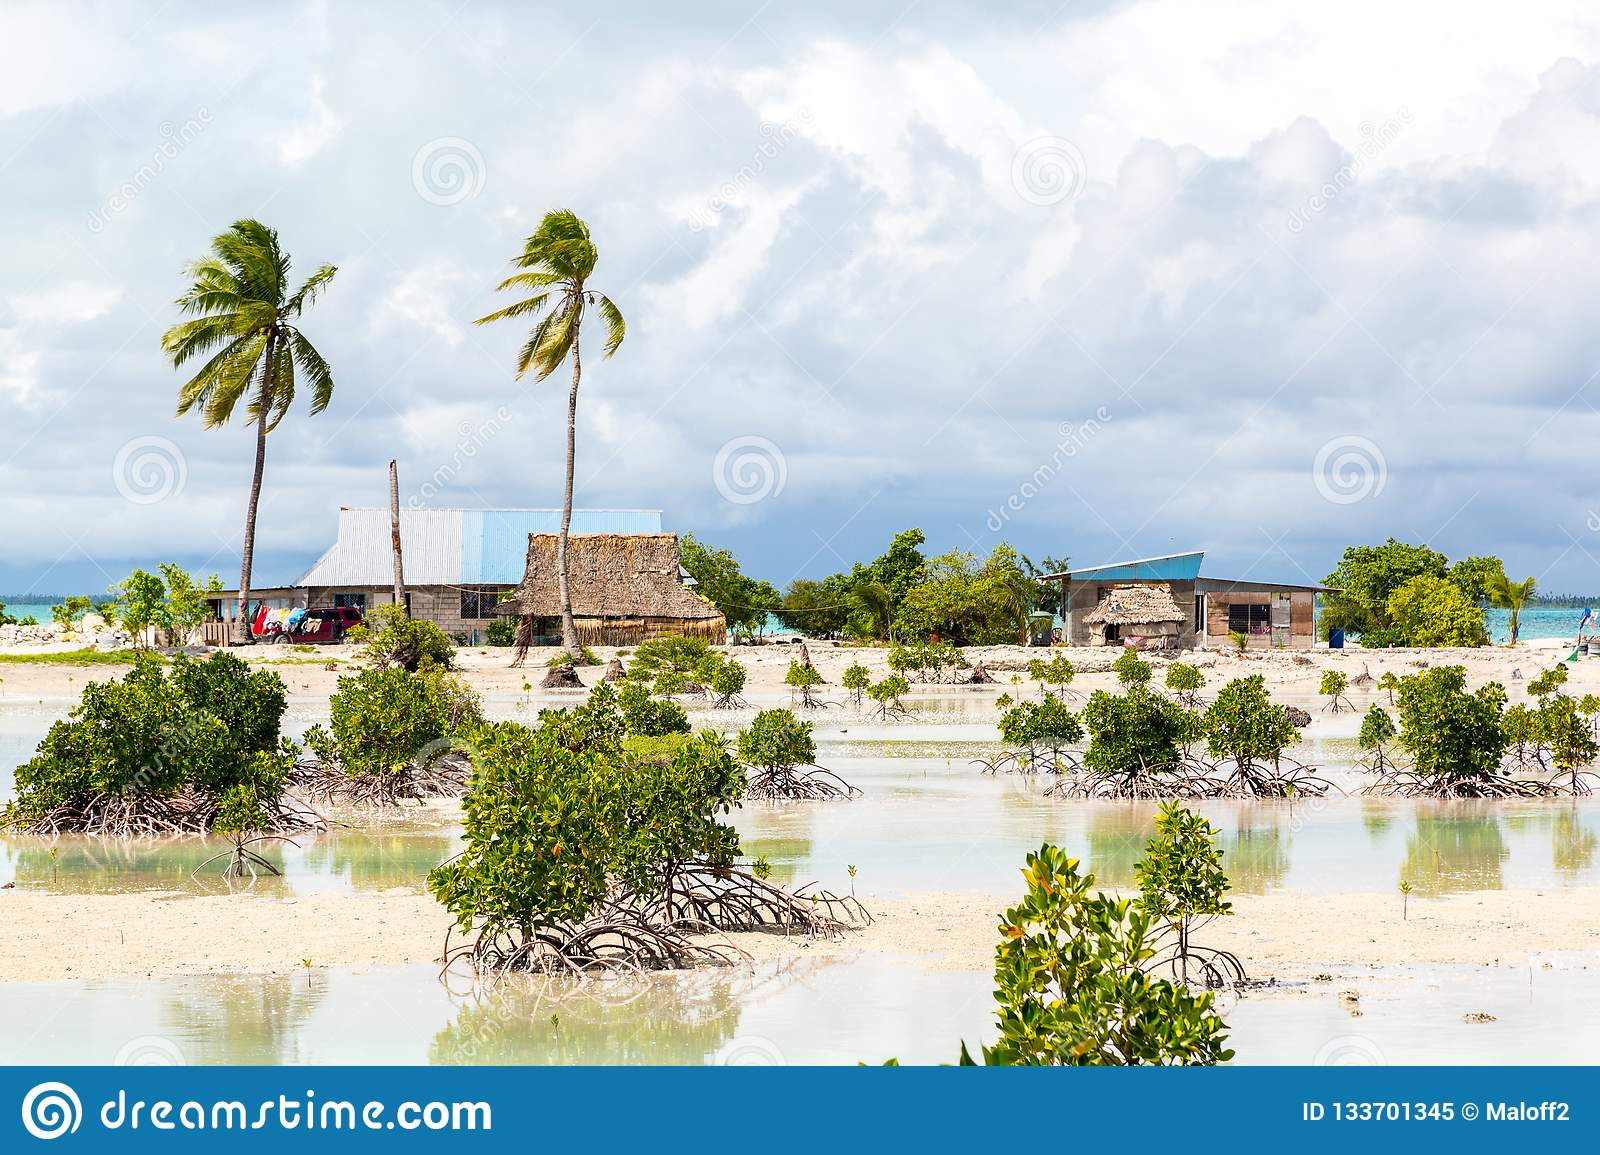 Village on South Tarawa atoll, Kiribati, Gilbert islands, Micronesia, Oceania. Thatched roof houses. Rural life, a remote paradise